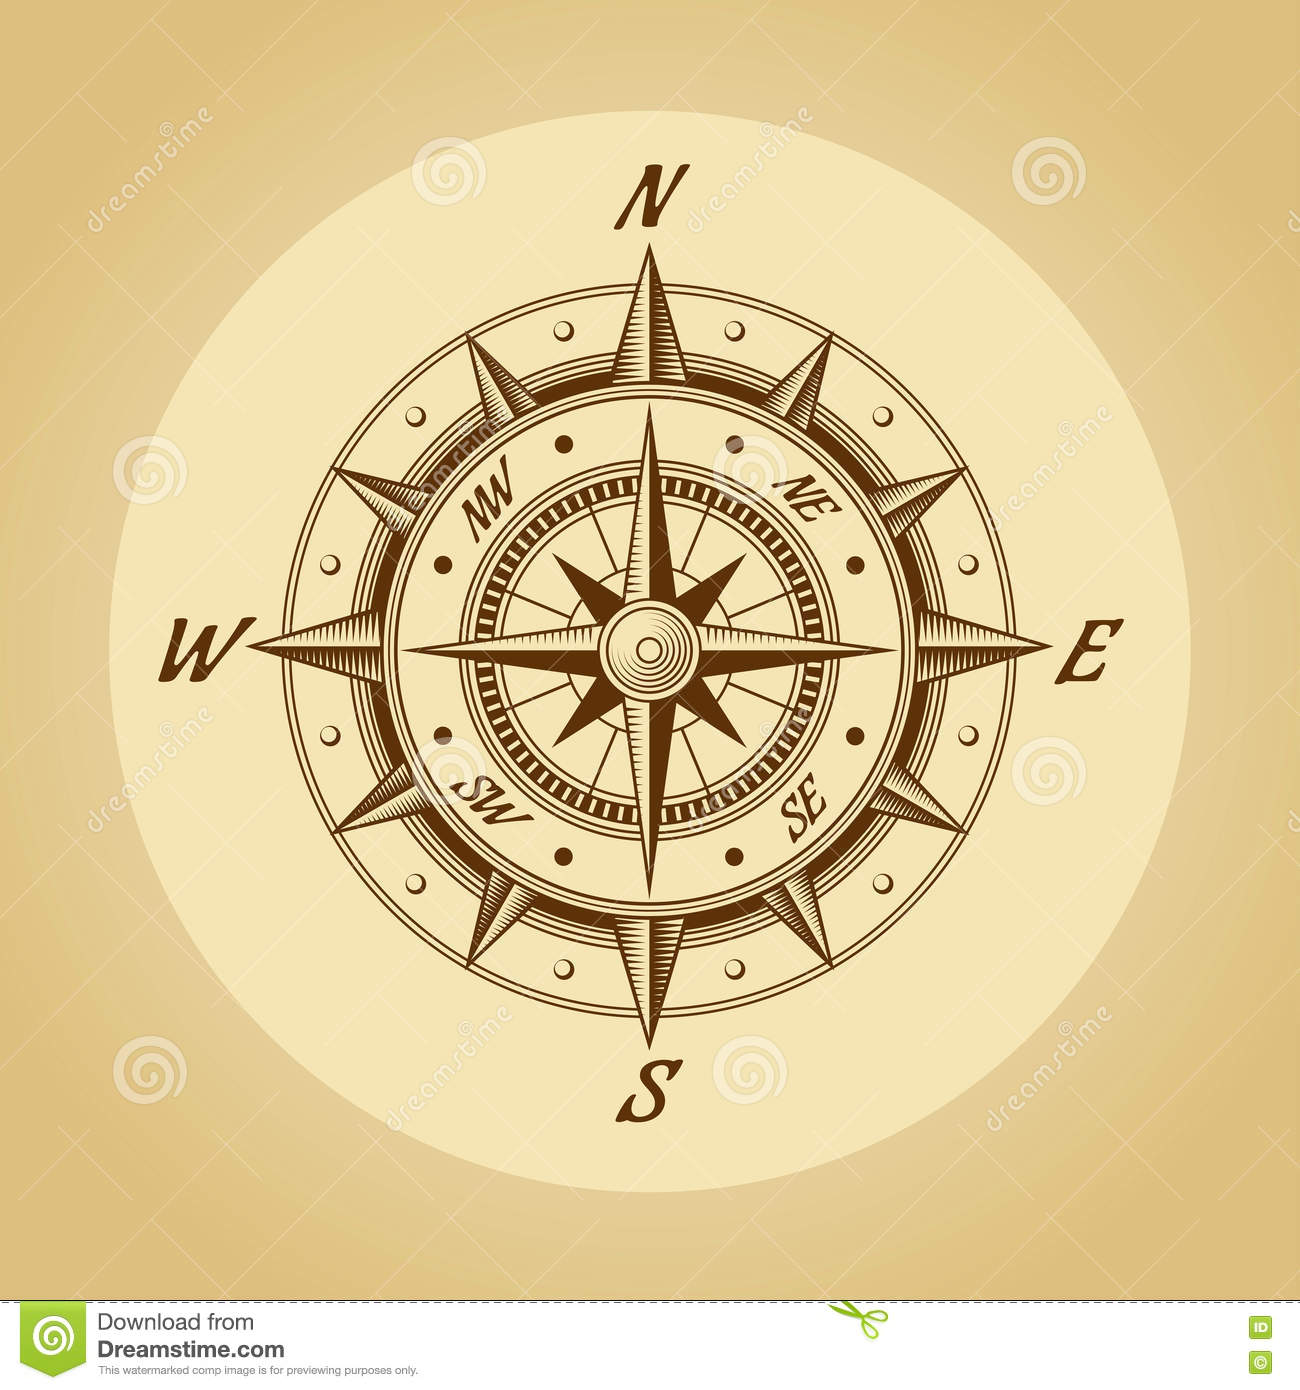 Wind Rose In Old Retro Style. Vector. Royalty Free Stock Photo - Image ...